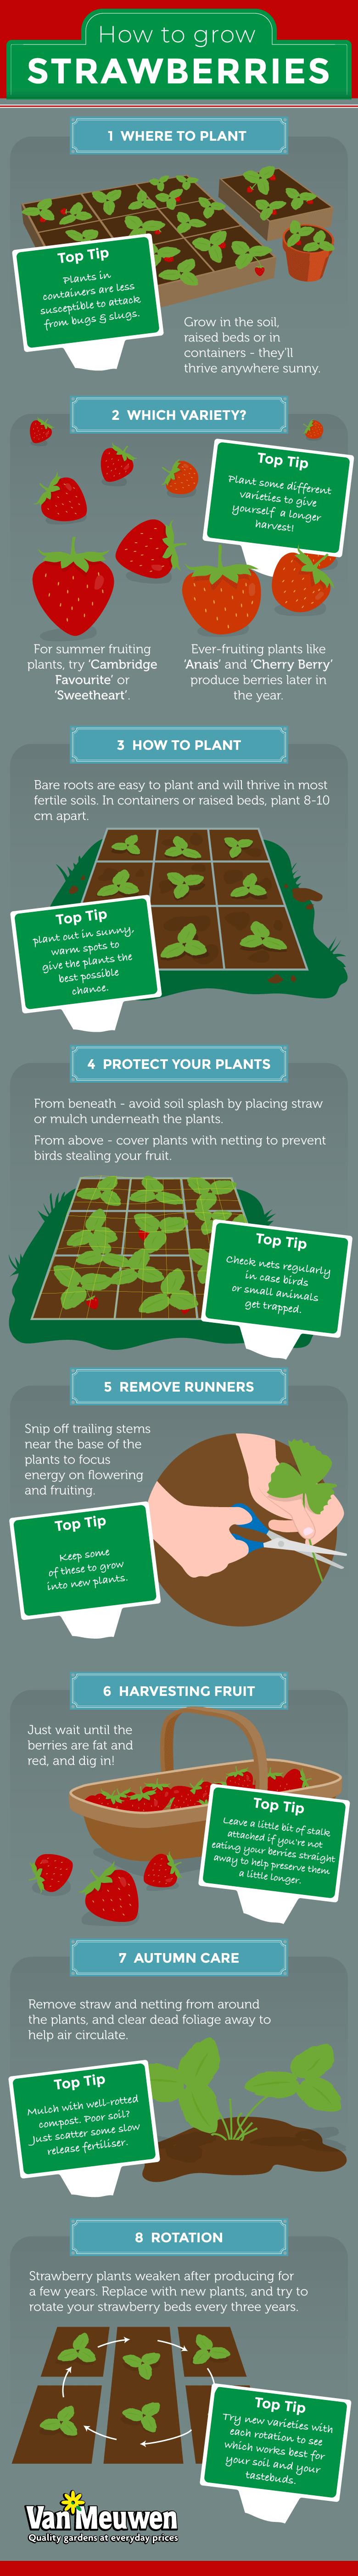 how to grow strawberries infographic from Van Meuwen